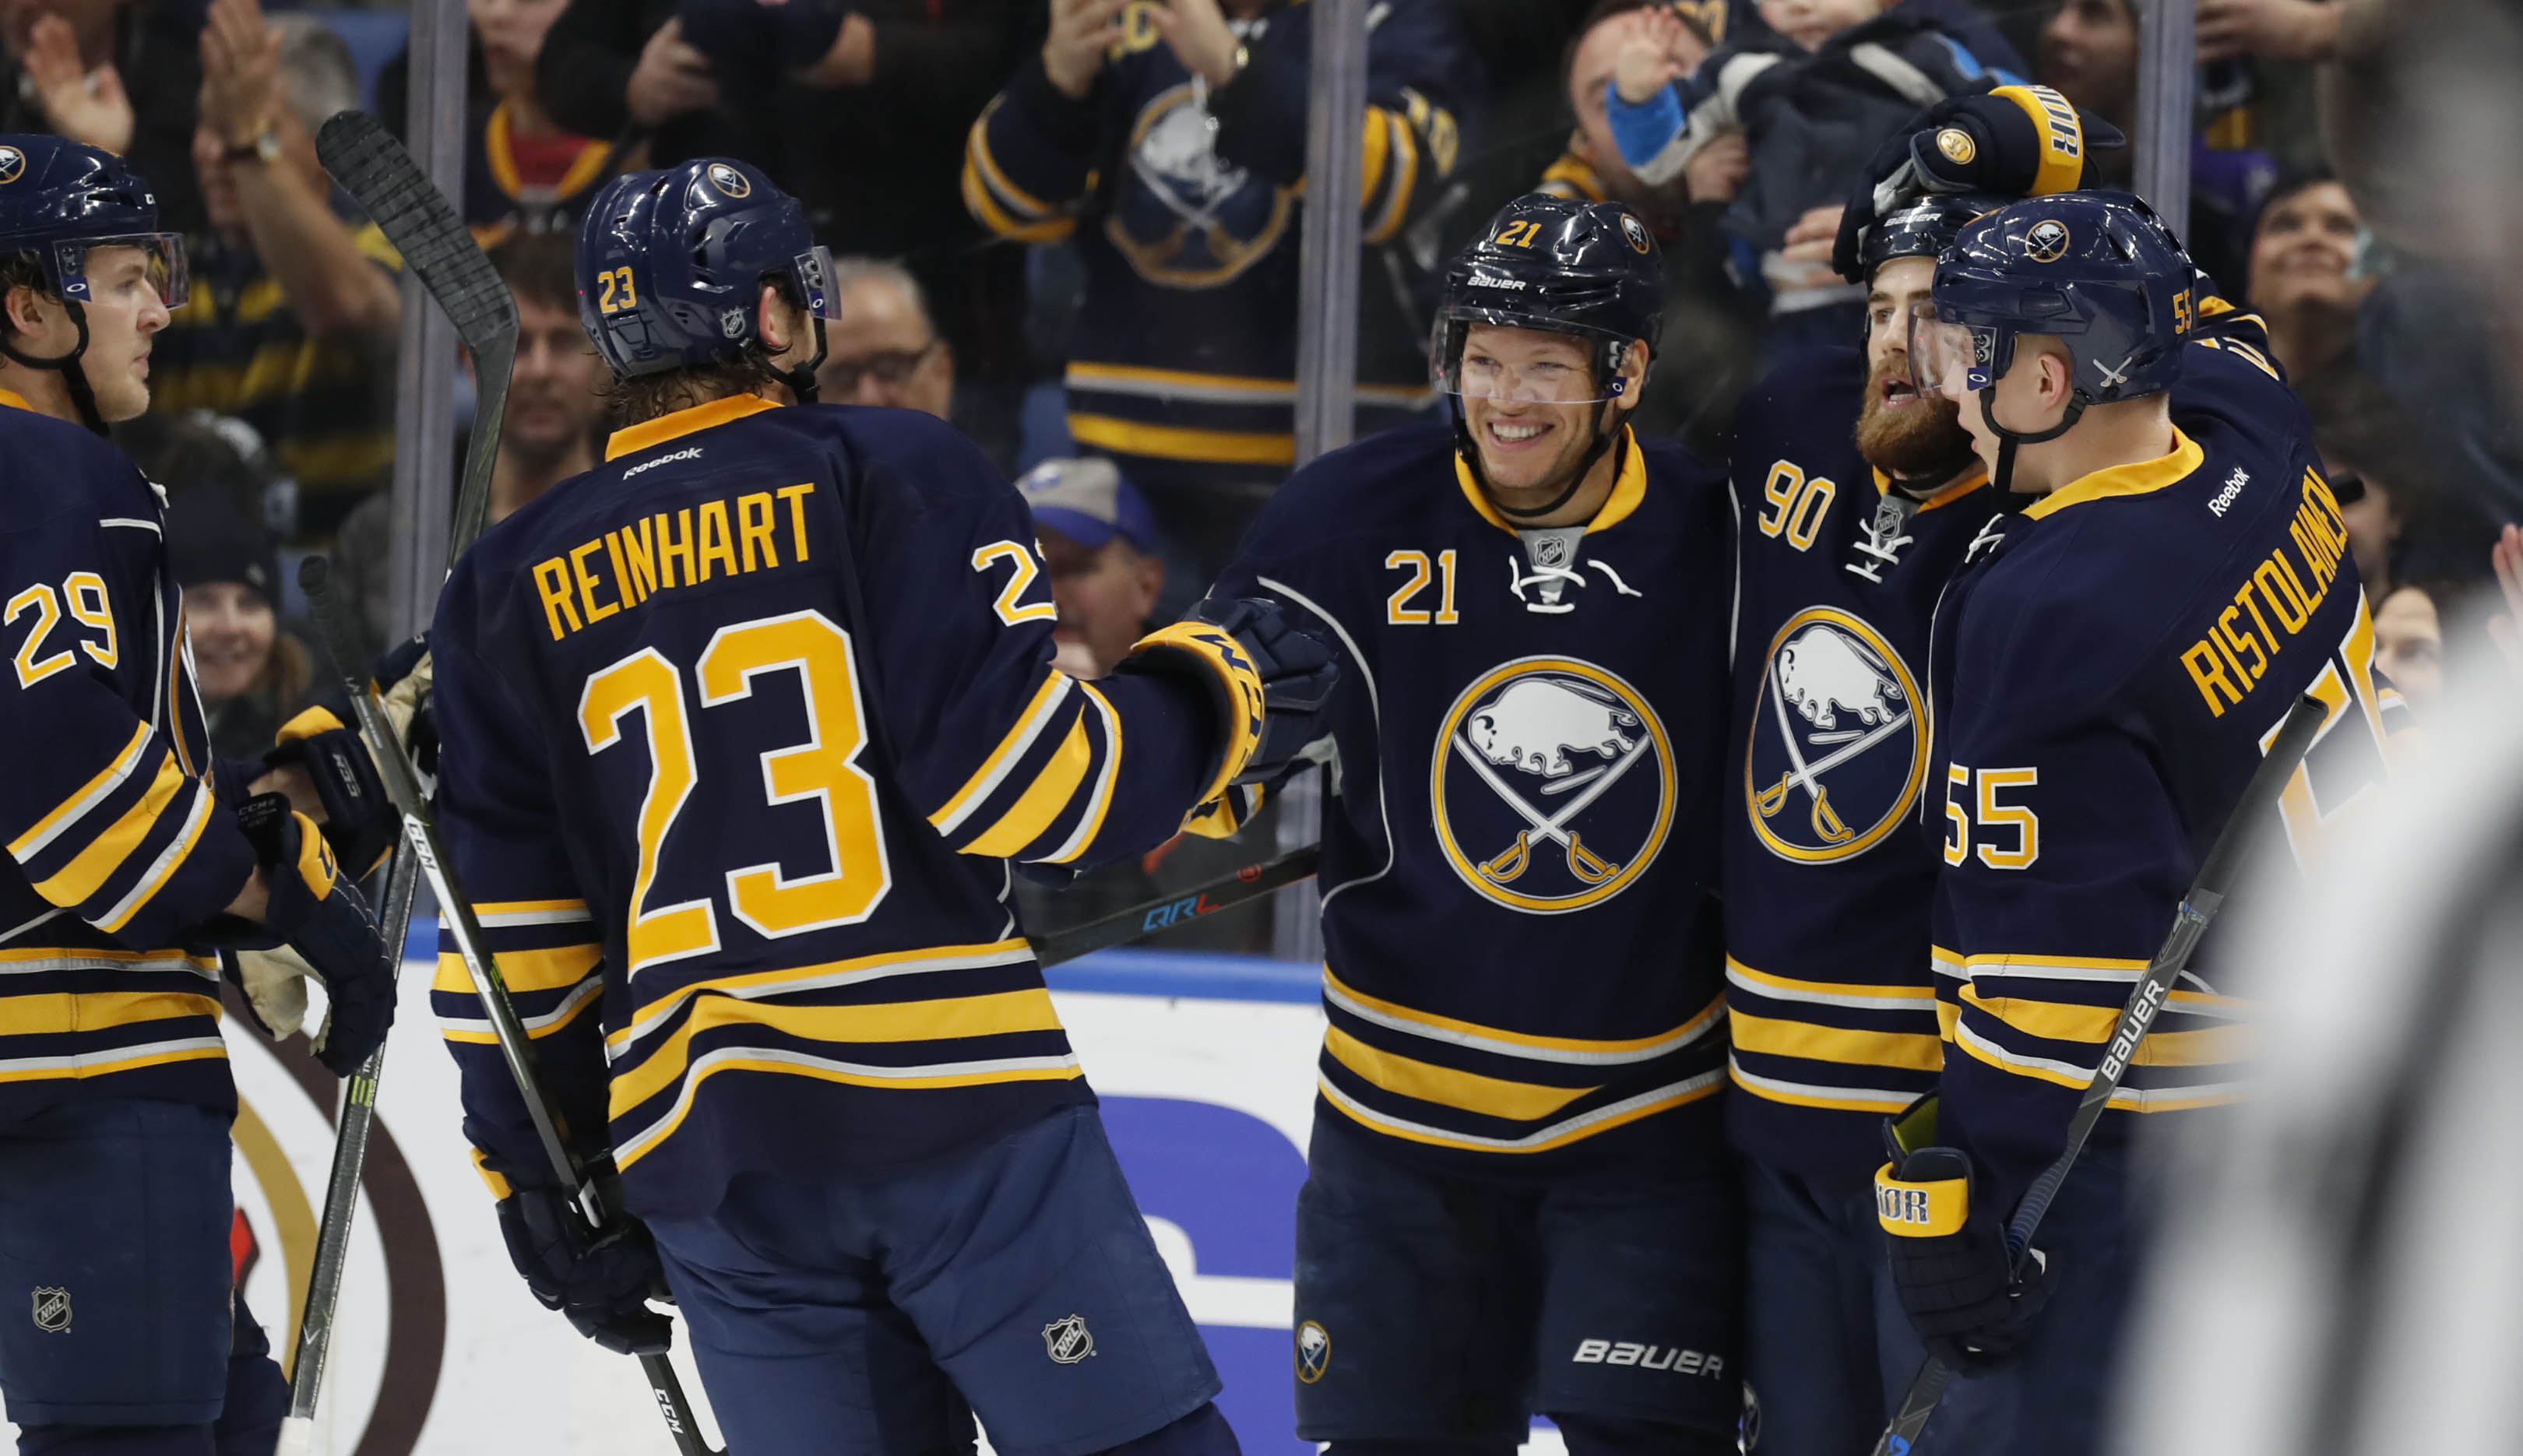 Sam Reinhart, Kyle Okposo (21), Ryan O'Reilly and Rasmus Ristolainen all reached the score sheet Tuesday. (Harry Scull Jr./Buffalo News)